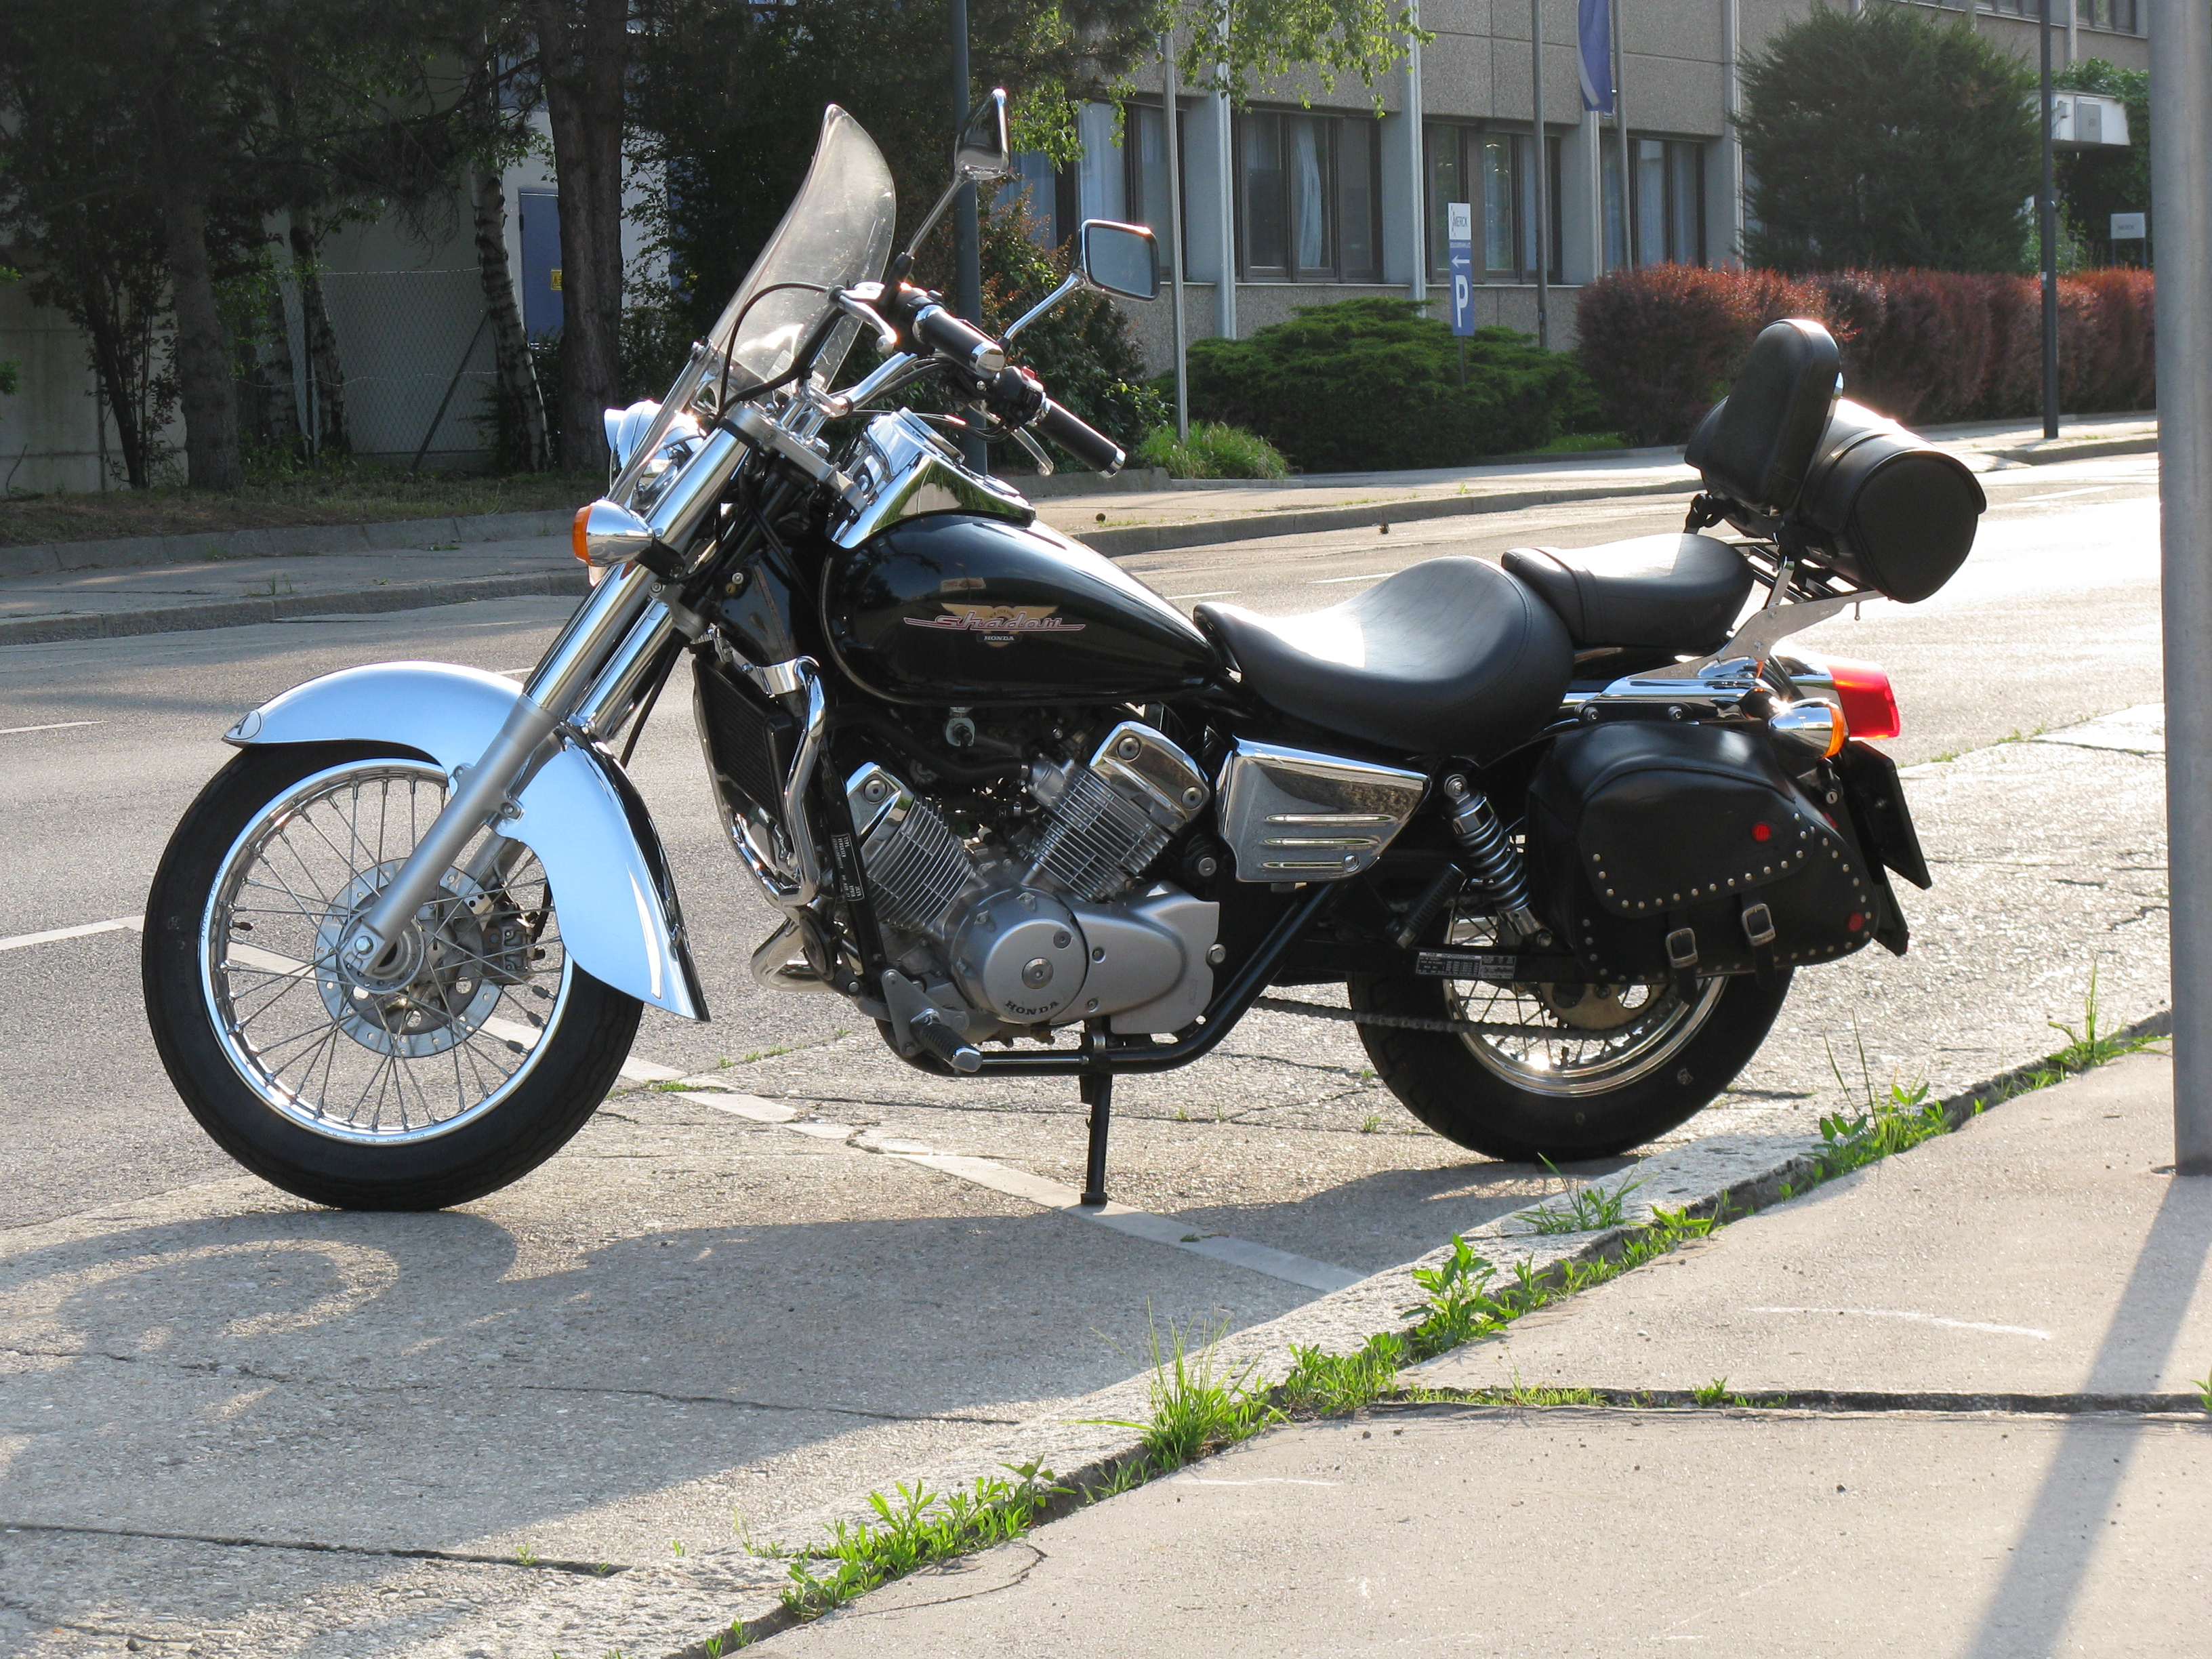 file honda shadow vt 125 c1 with original honda accessoires wikimedia commons. Black Bedroom Furniture Sets. Home Design Ideas